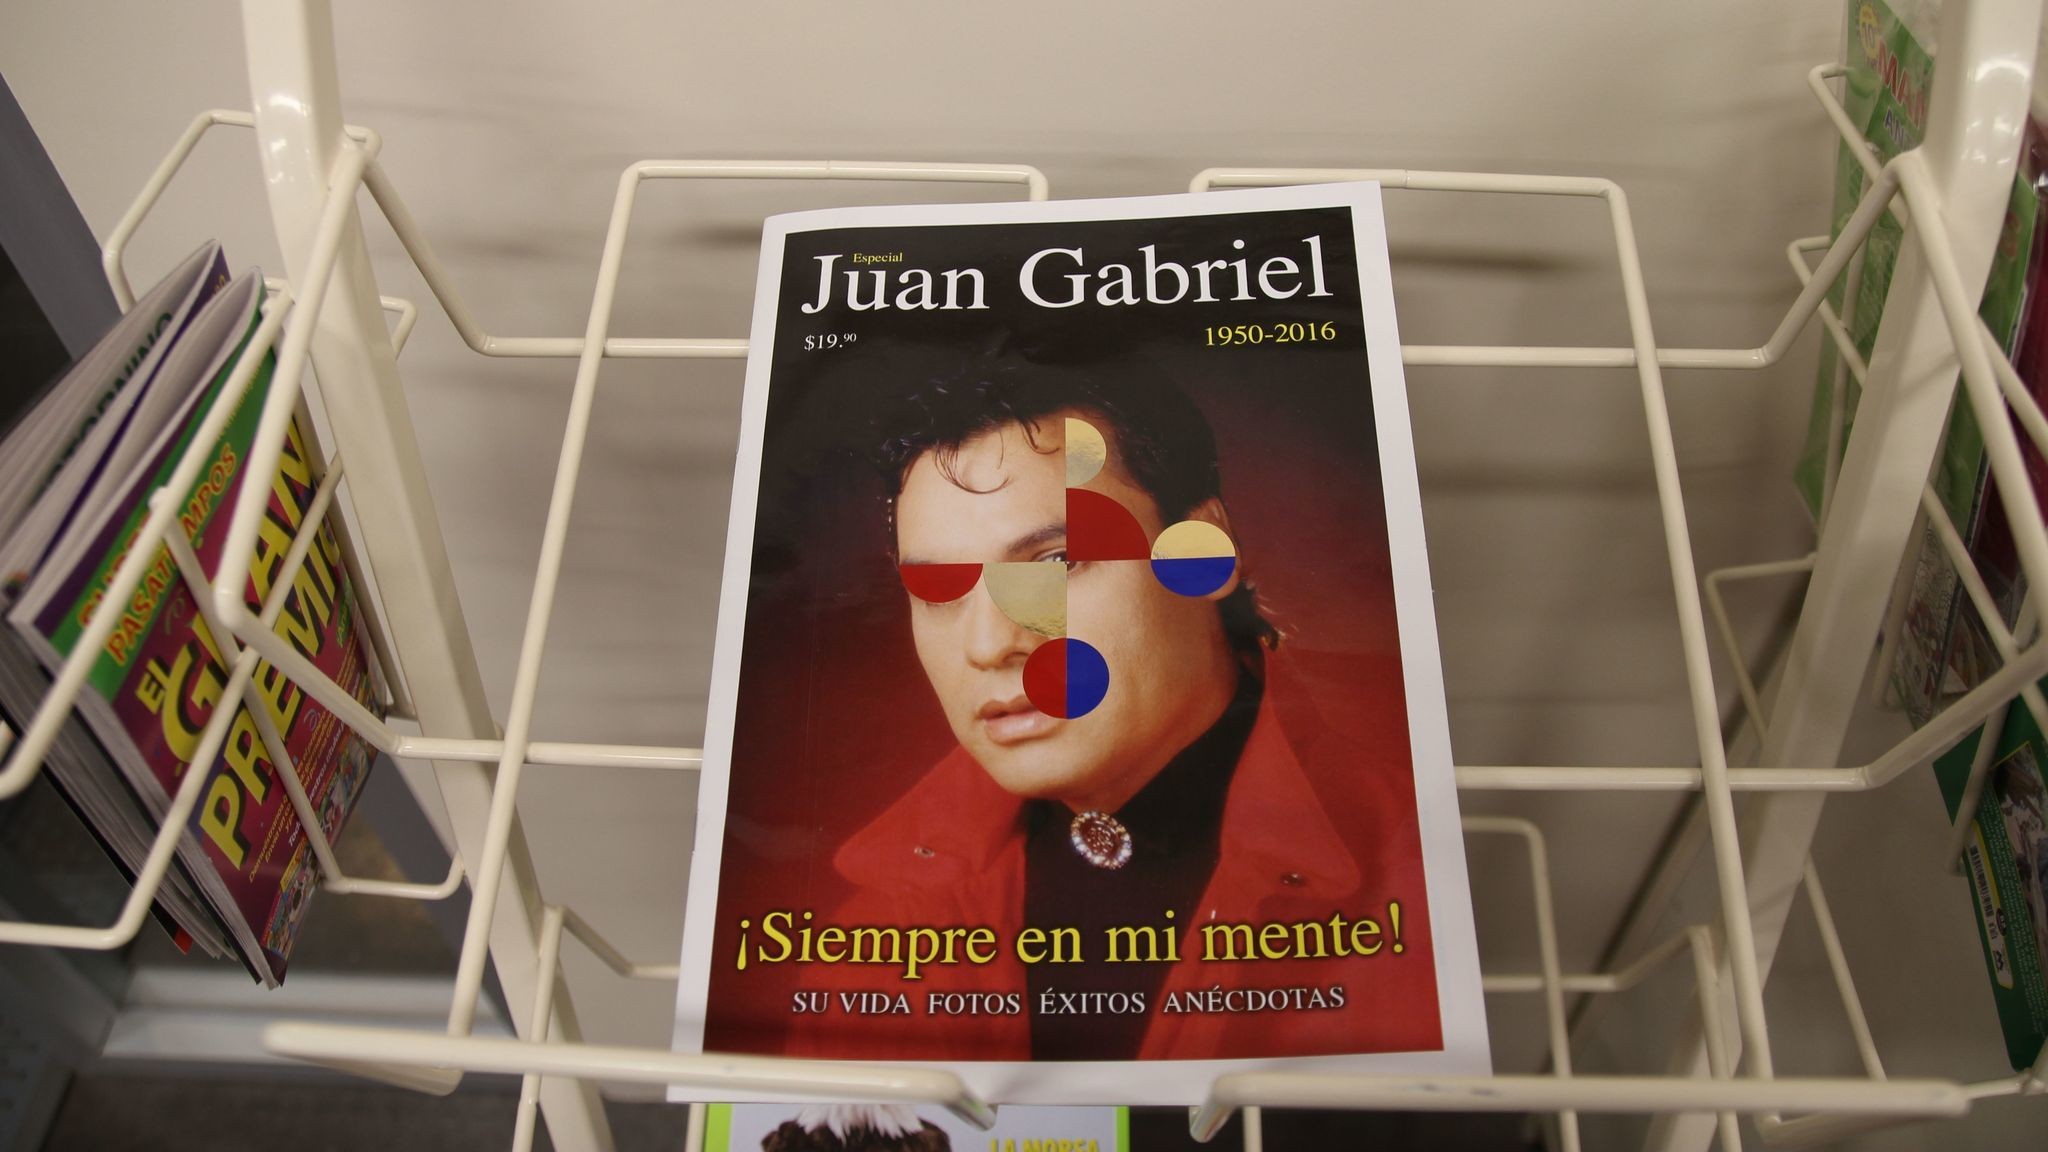 A magazine about the late singer Juan Gabriel features interventions by Gabriel Orozco.